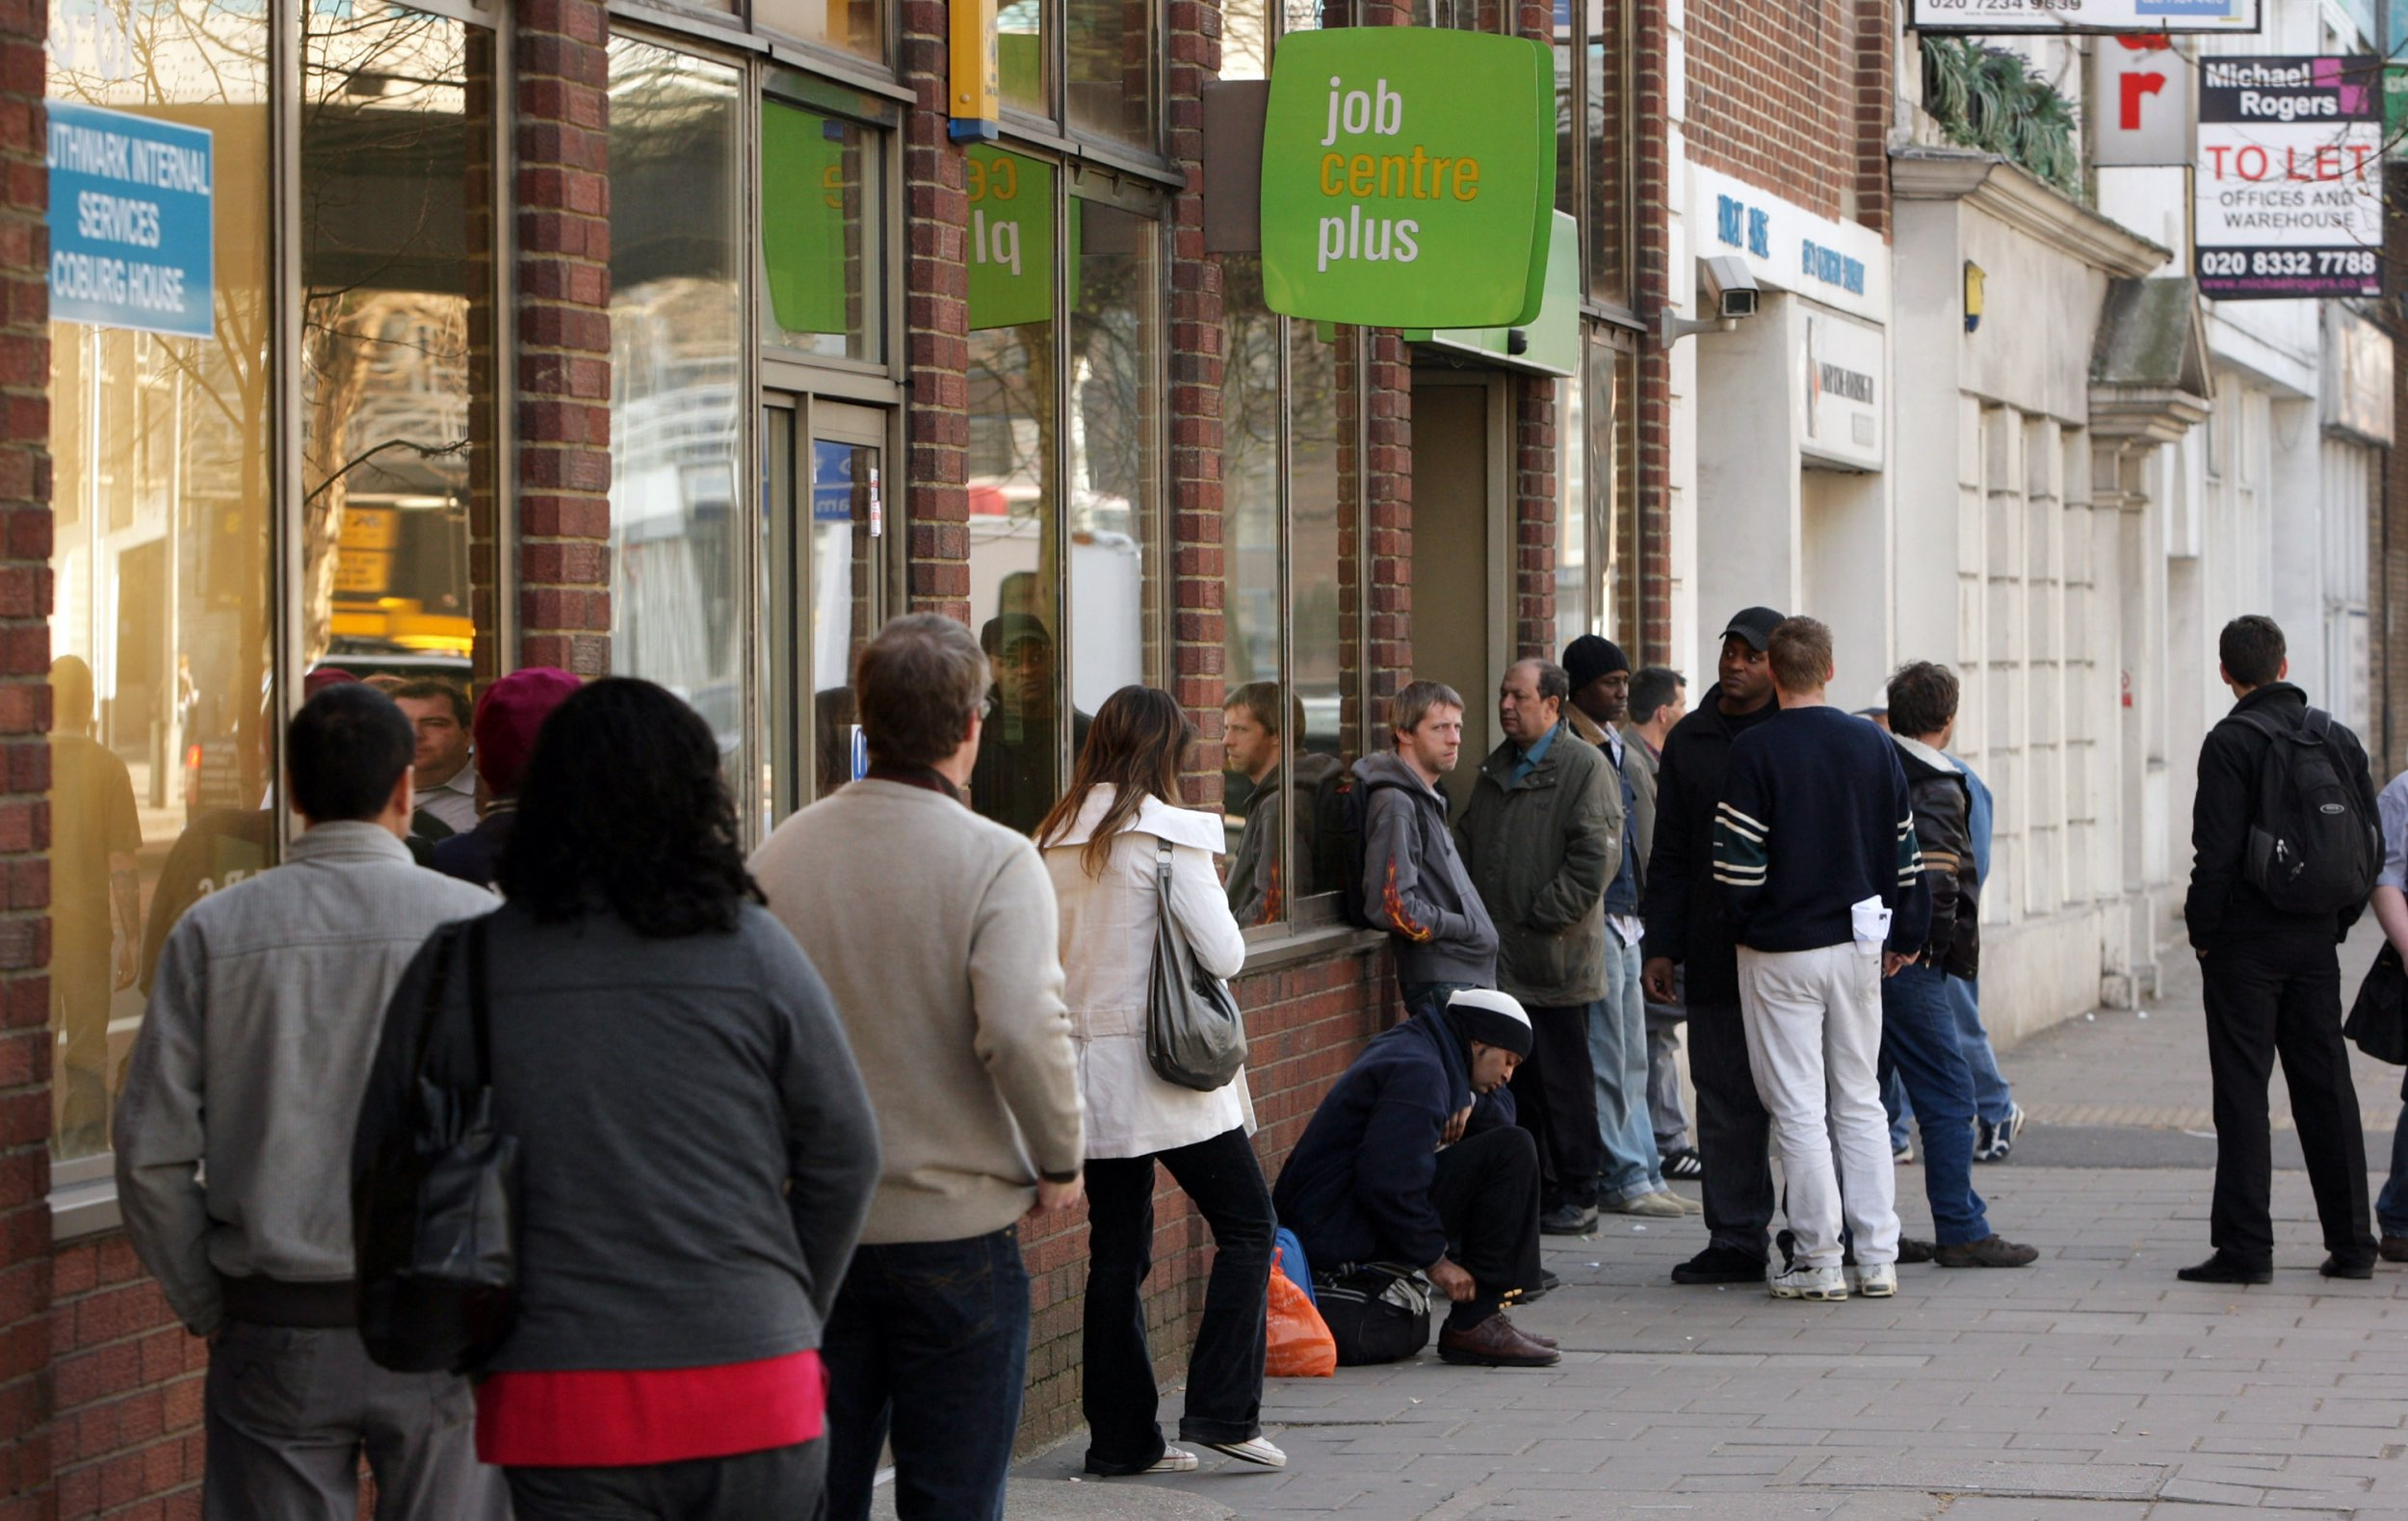 the rise of unemployment Employment hit a new record high in the three months to april despite sluggish gdp growth at the start of the year - but pay growth remained disappointing.